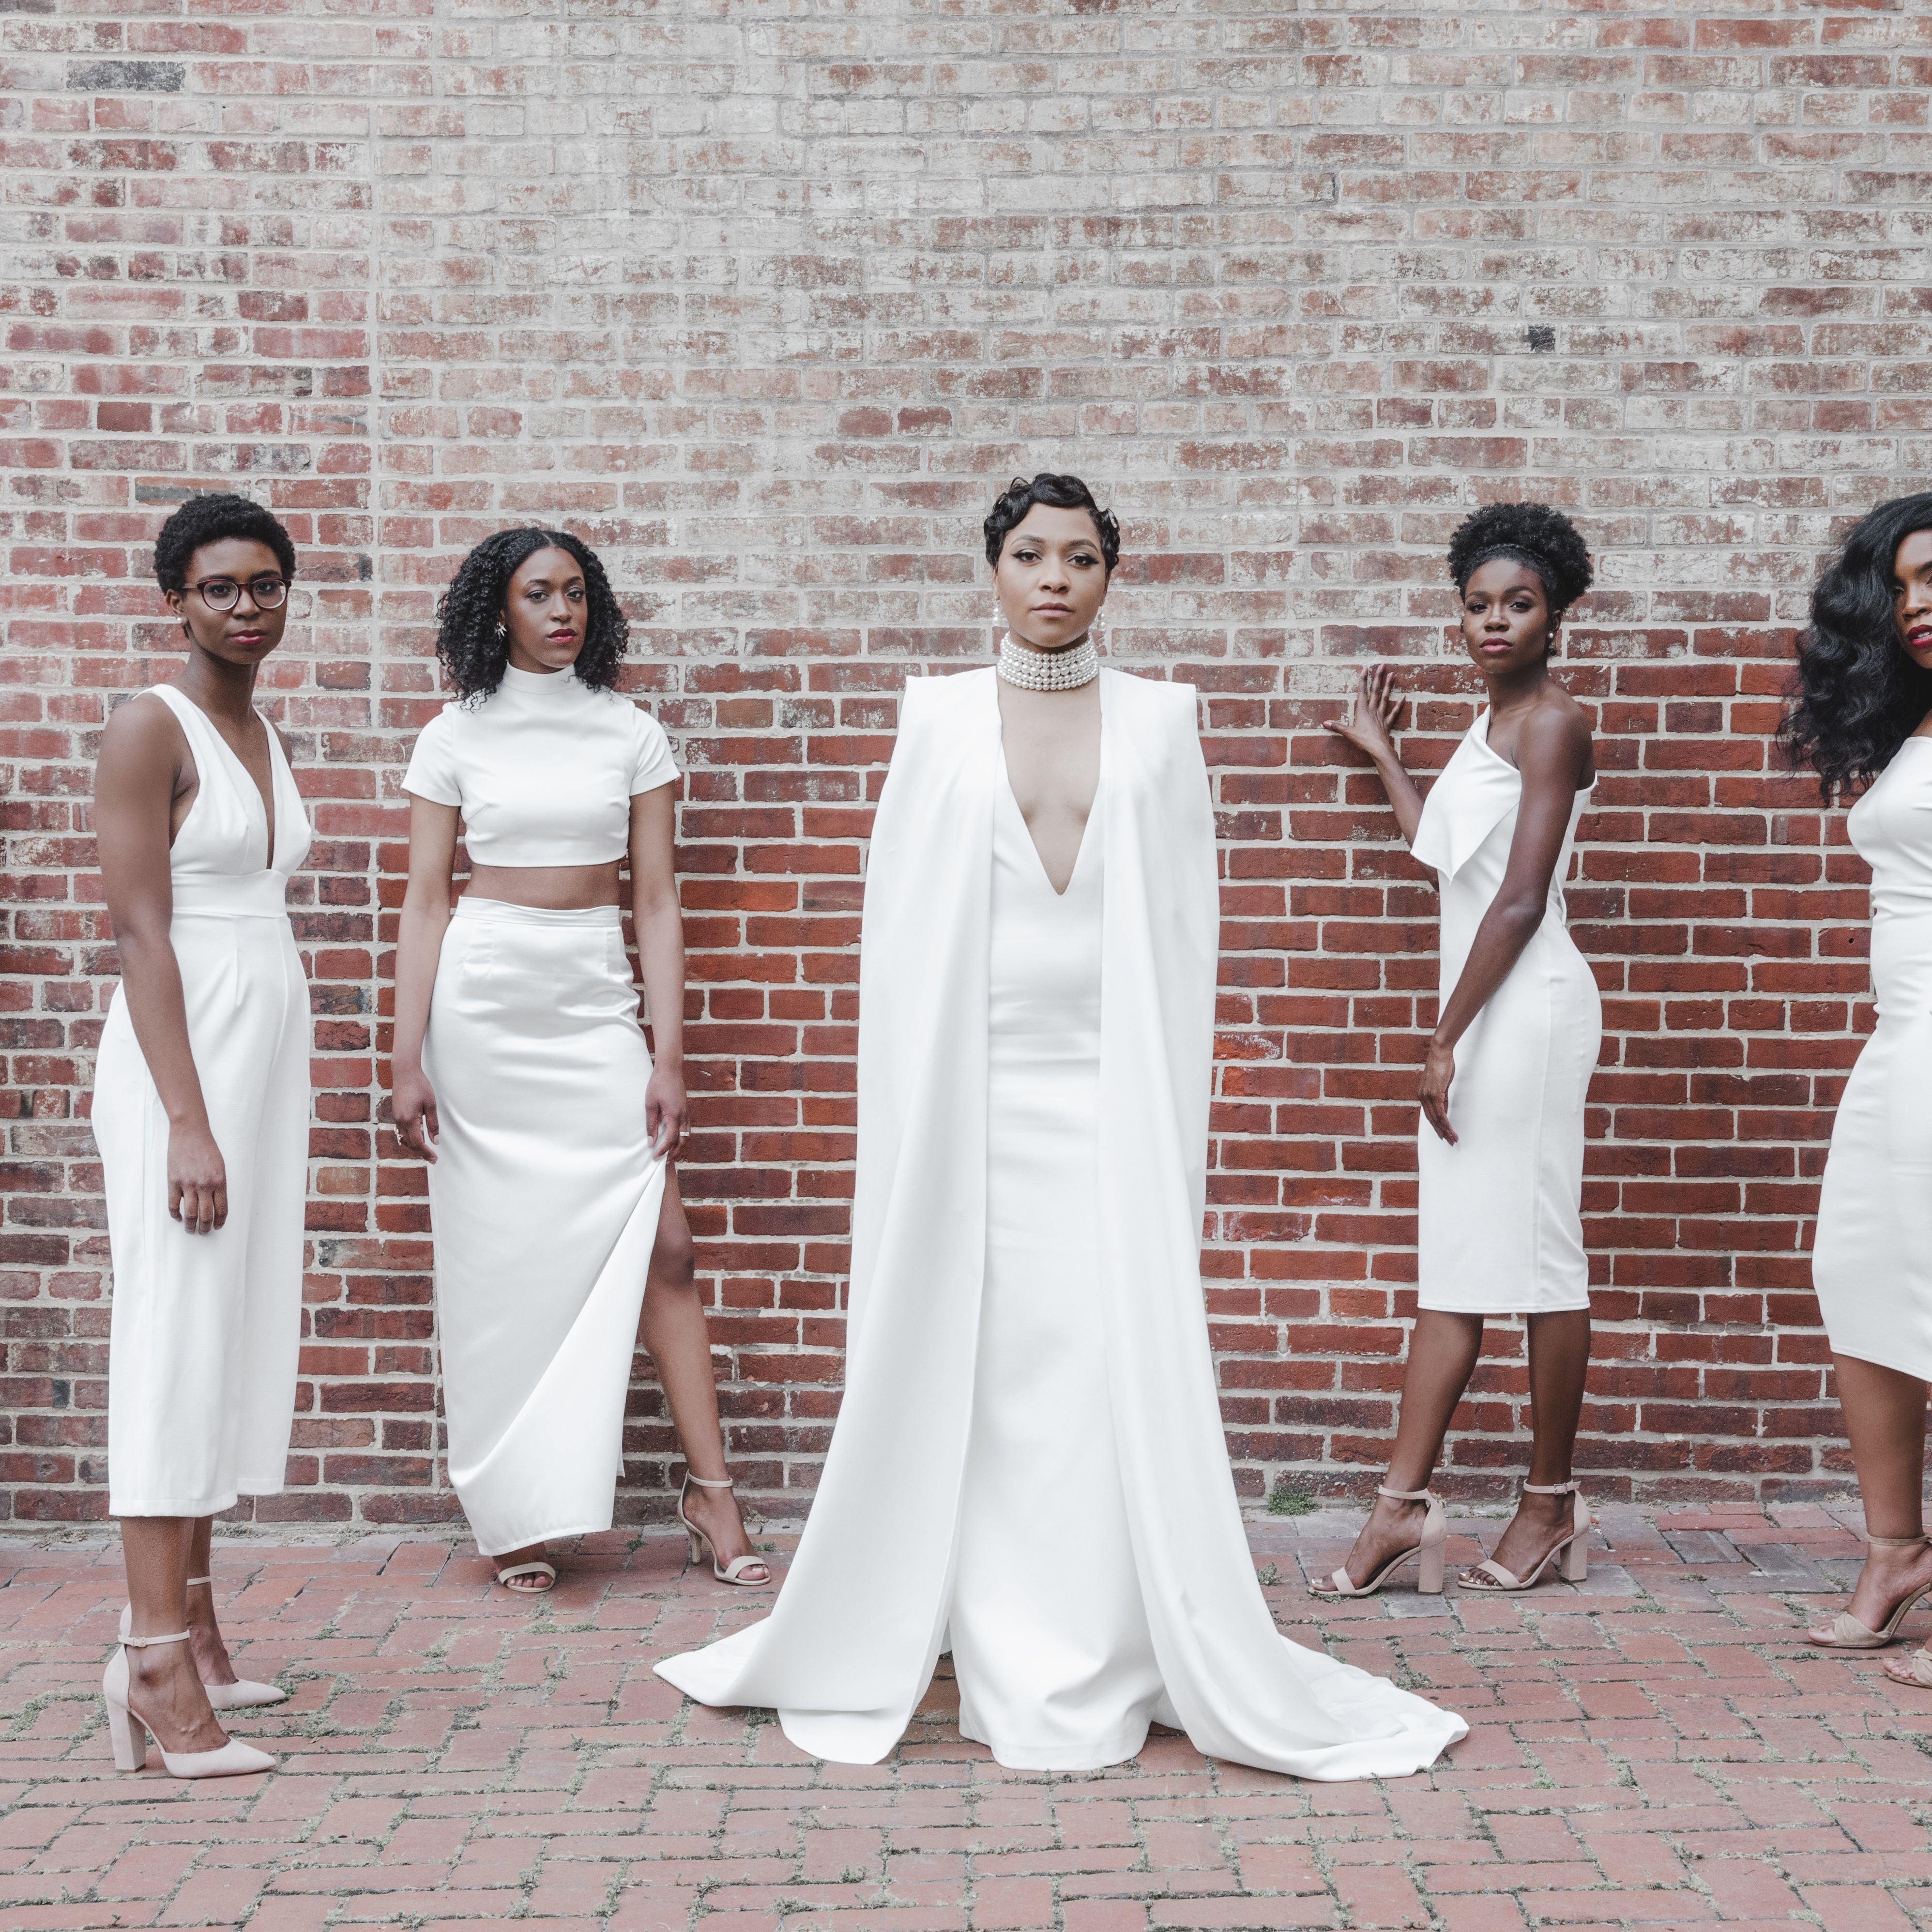 Solange Knowles S Wedding Inspired This Couple S Nuptials